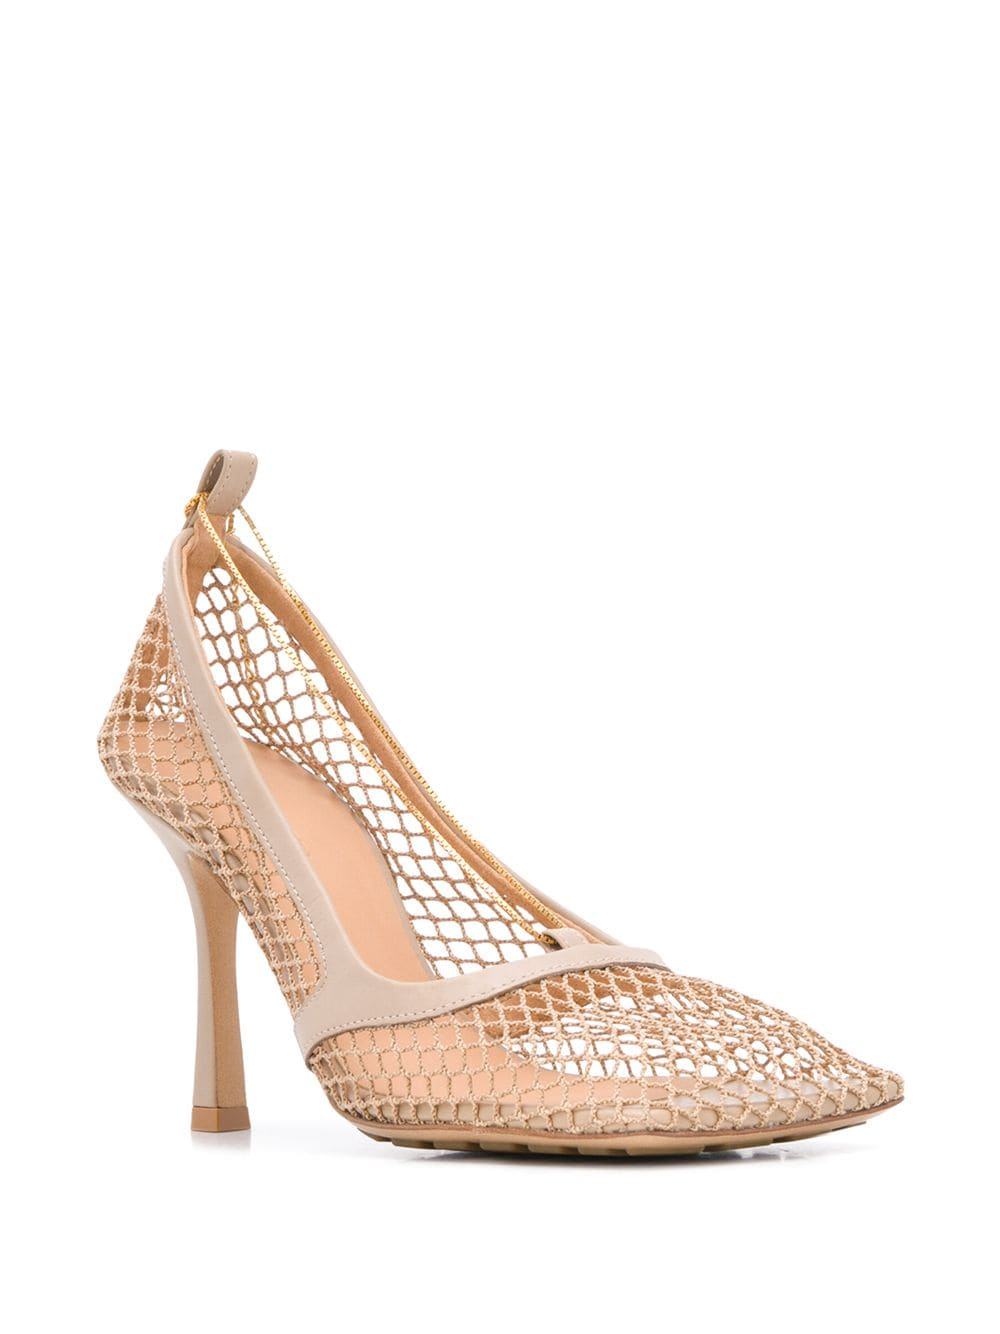 Chain-Embelished Mesh Pumps 3/4